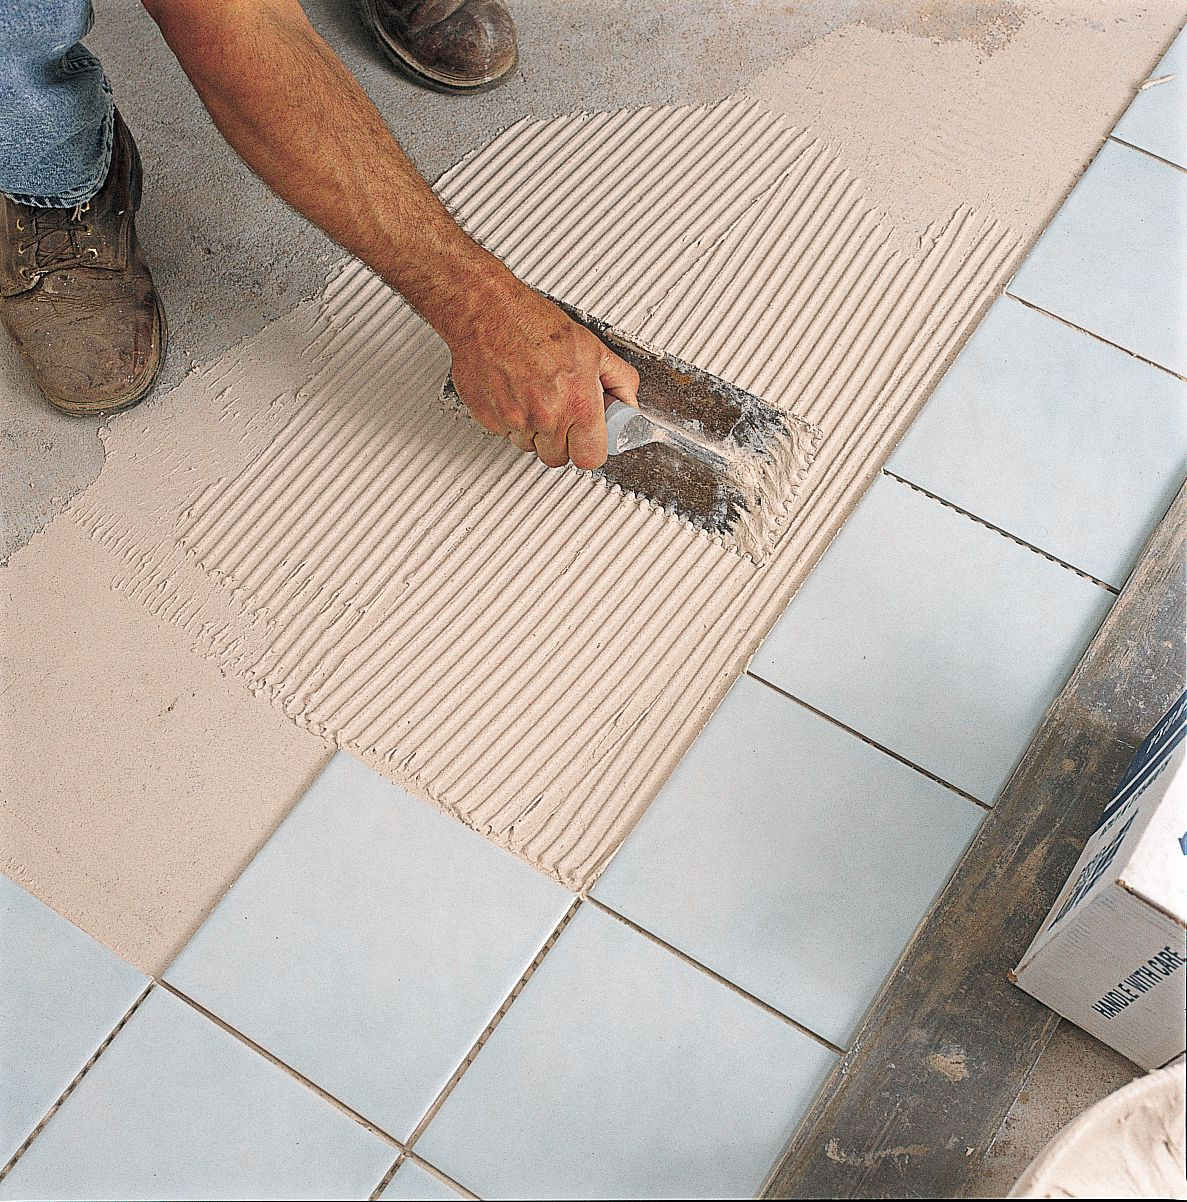 Spreading Thinset Mortar For Bathroom Tiles